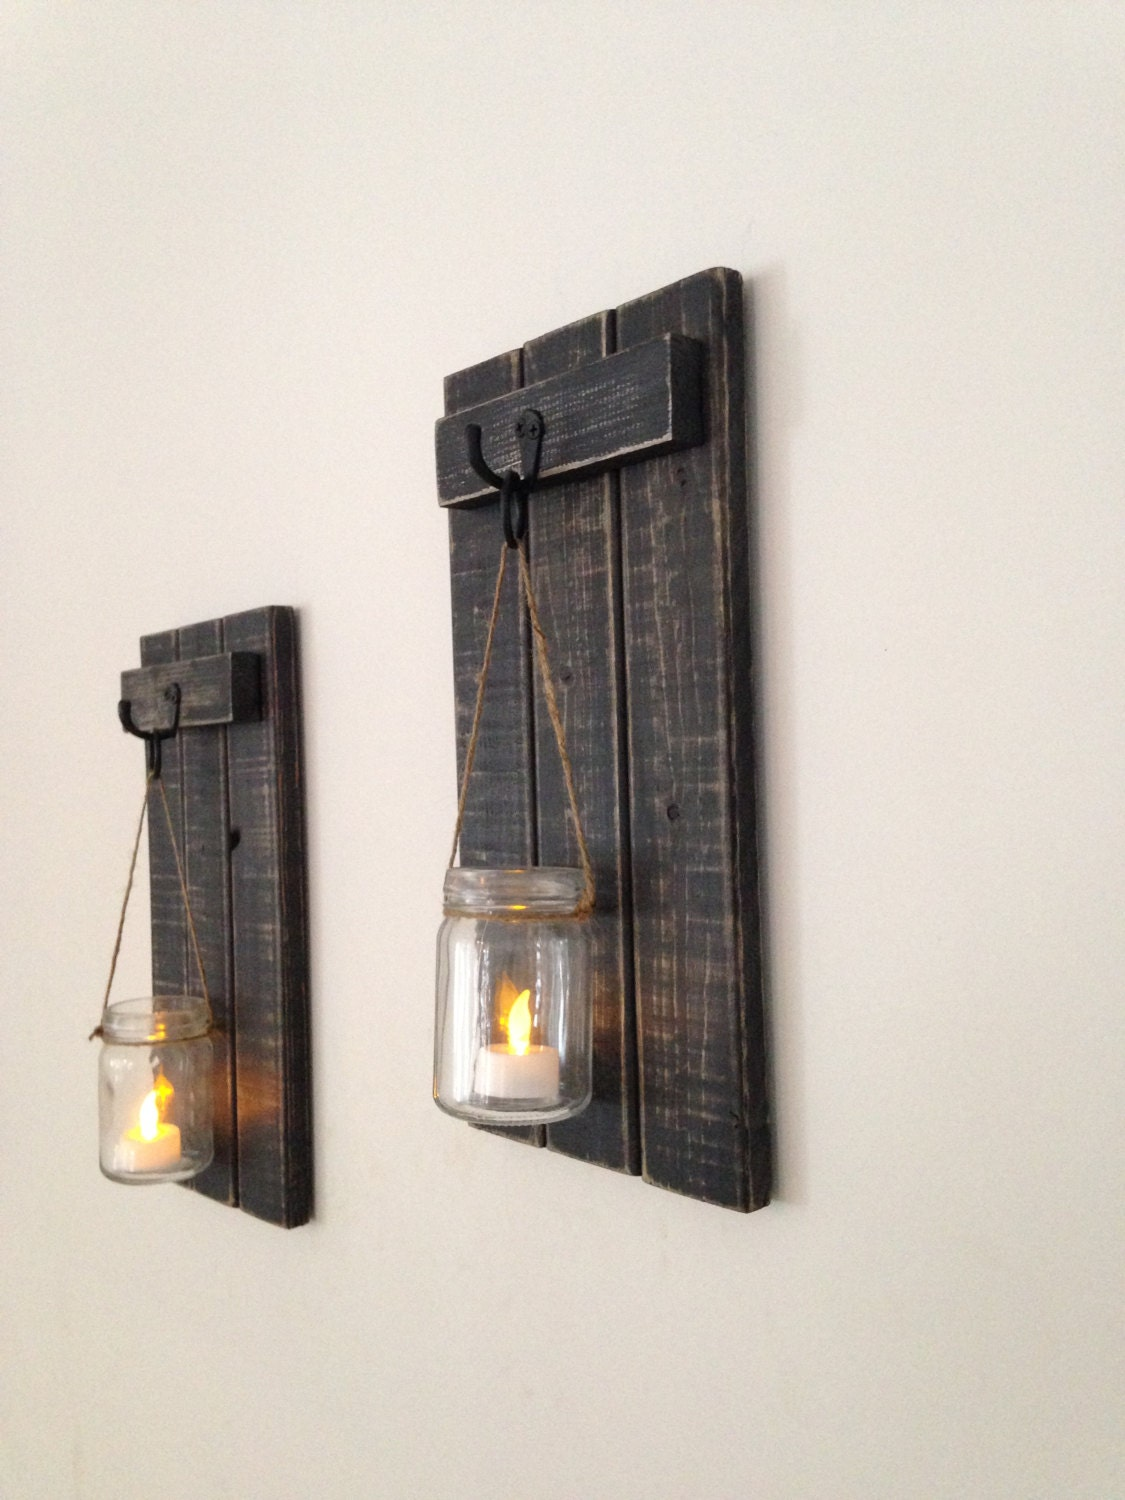 rustic wall decor wooden candle holder mason jar candle - rustic wall sconce wooden candle holder mason jar candle holder woodenwall sconce